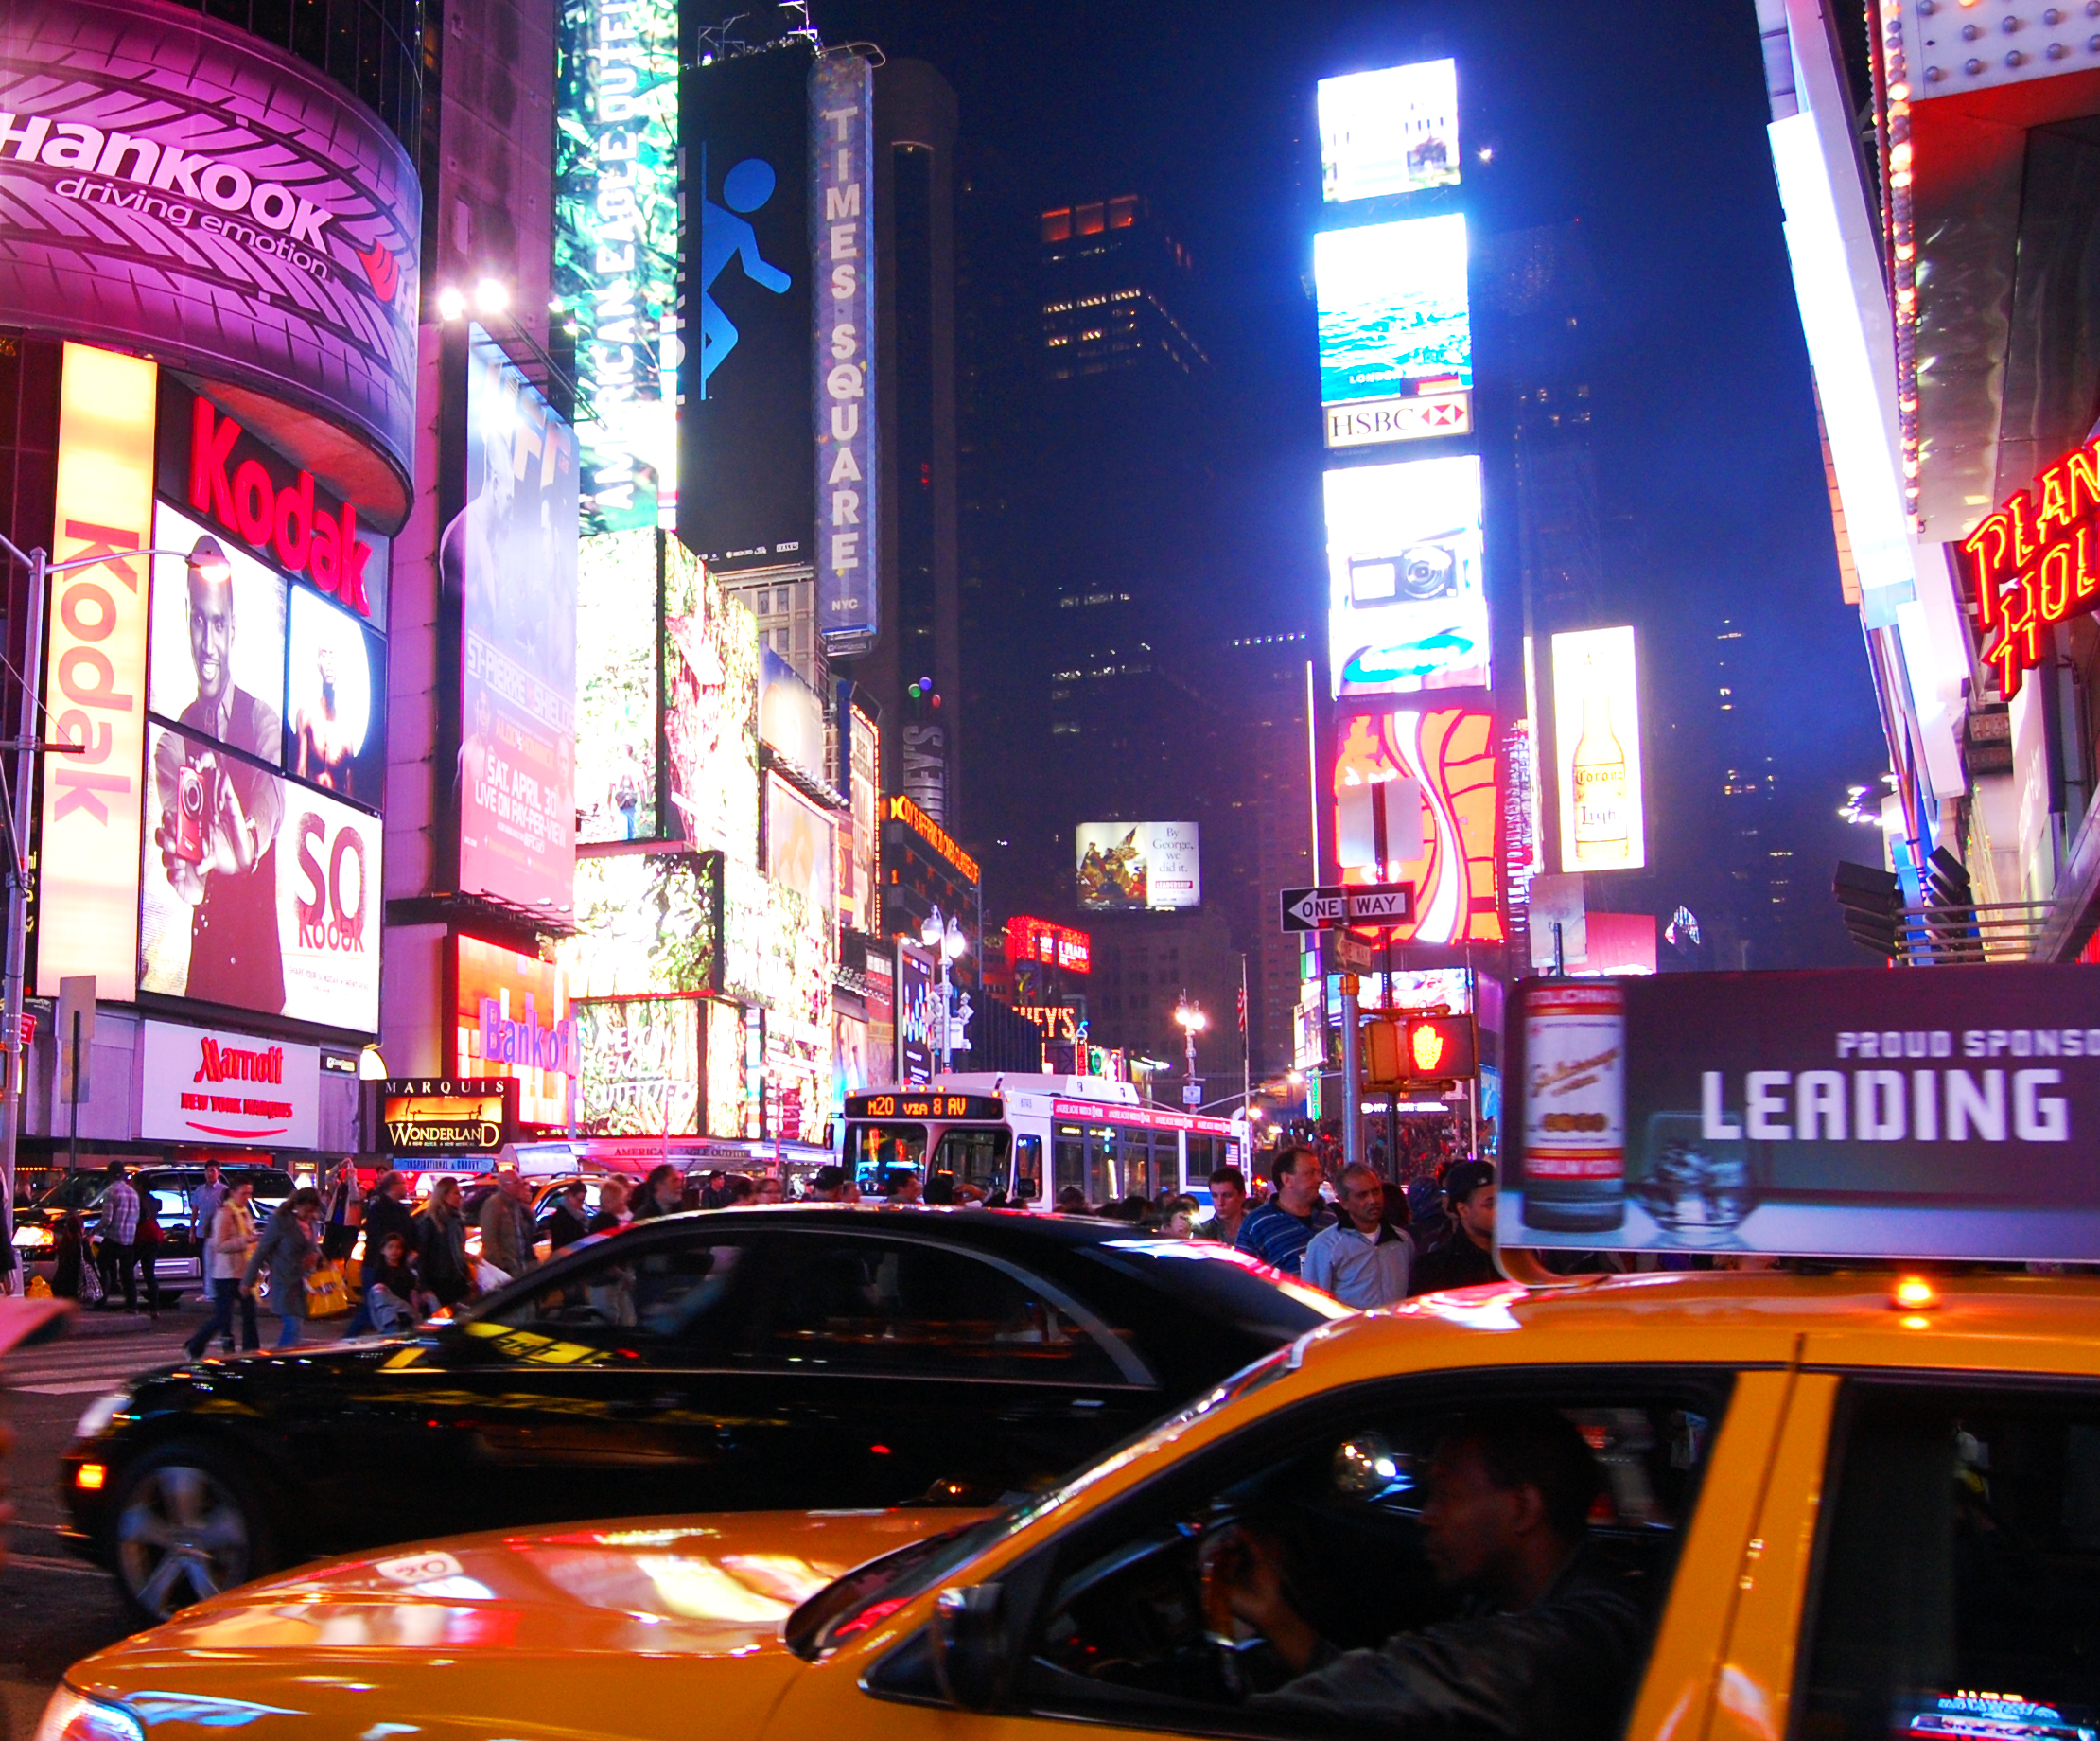 essay times square People from all over the world go to times square to have a glimpse of such a beautiful sight a new york trip will never be complete without a visit to times square the skyscrapers are so astonishingly tall and eye-catching.